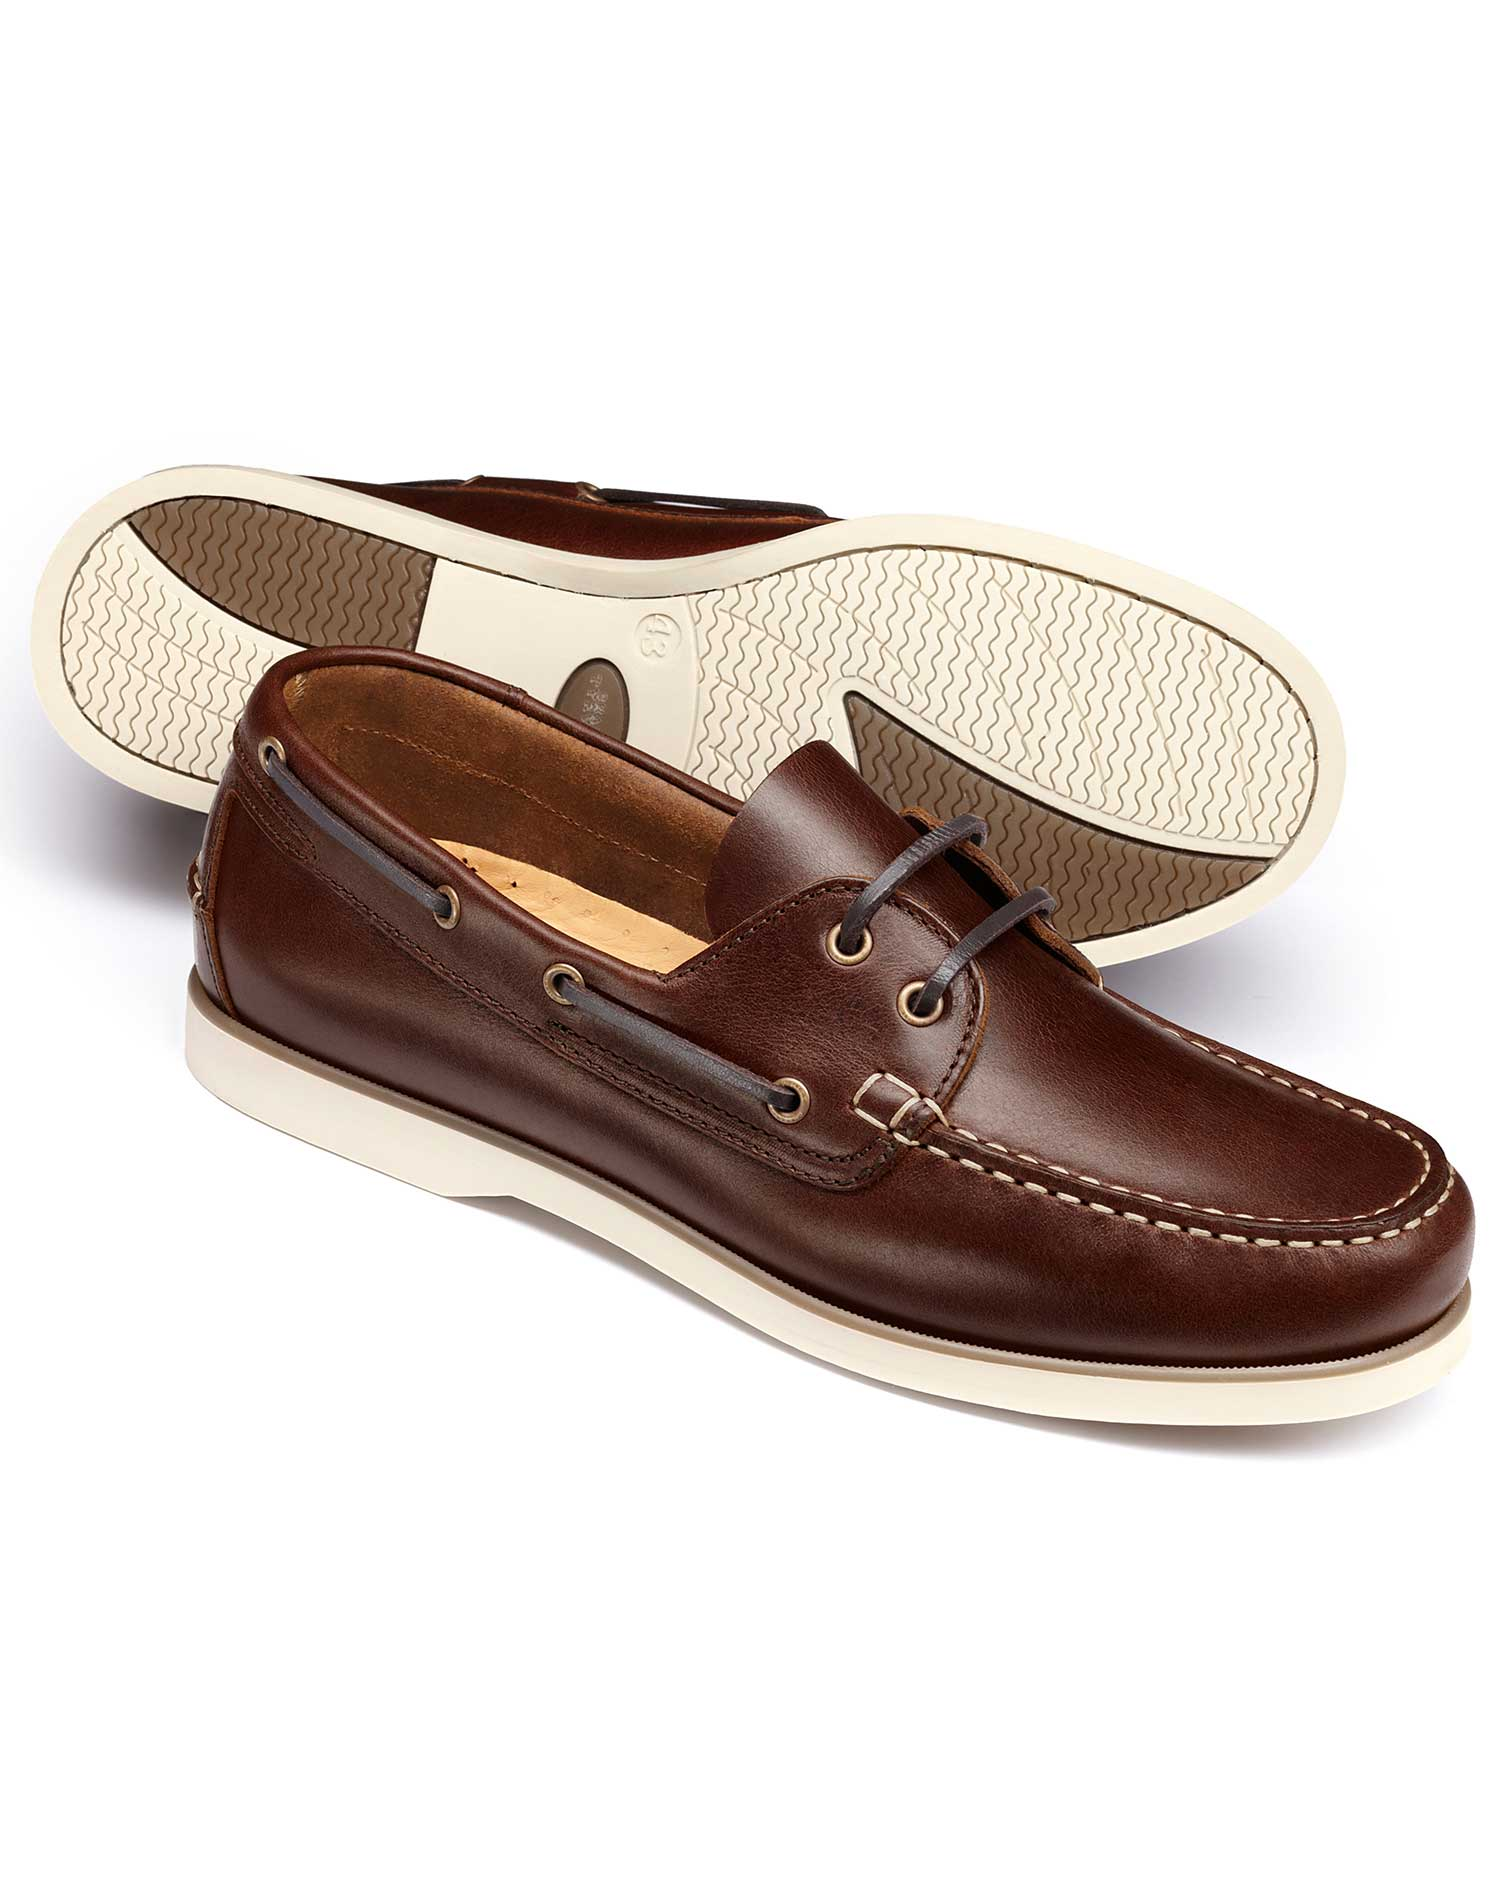 Brown Boat Shoes Size 11 R by Charles Tyrwhitt